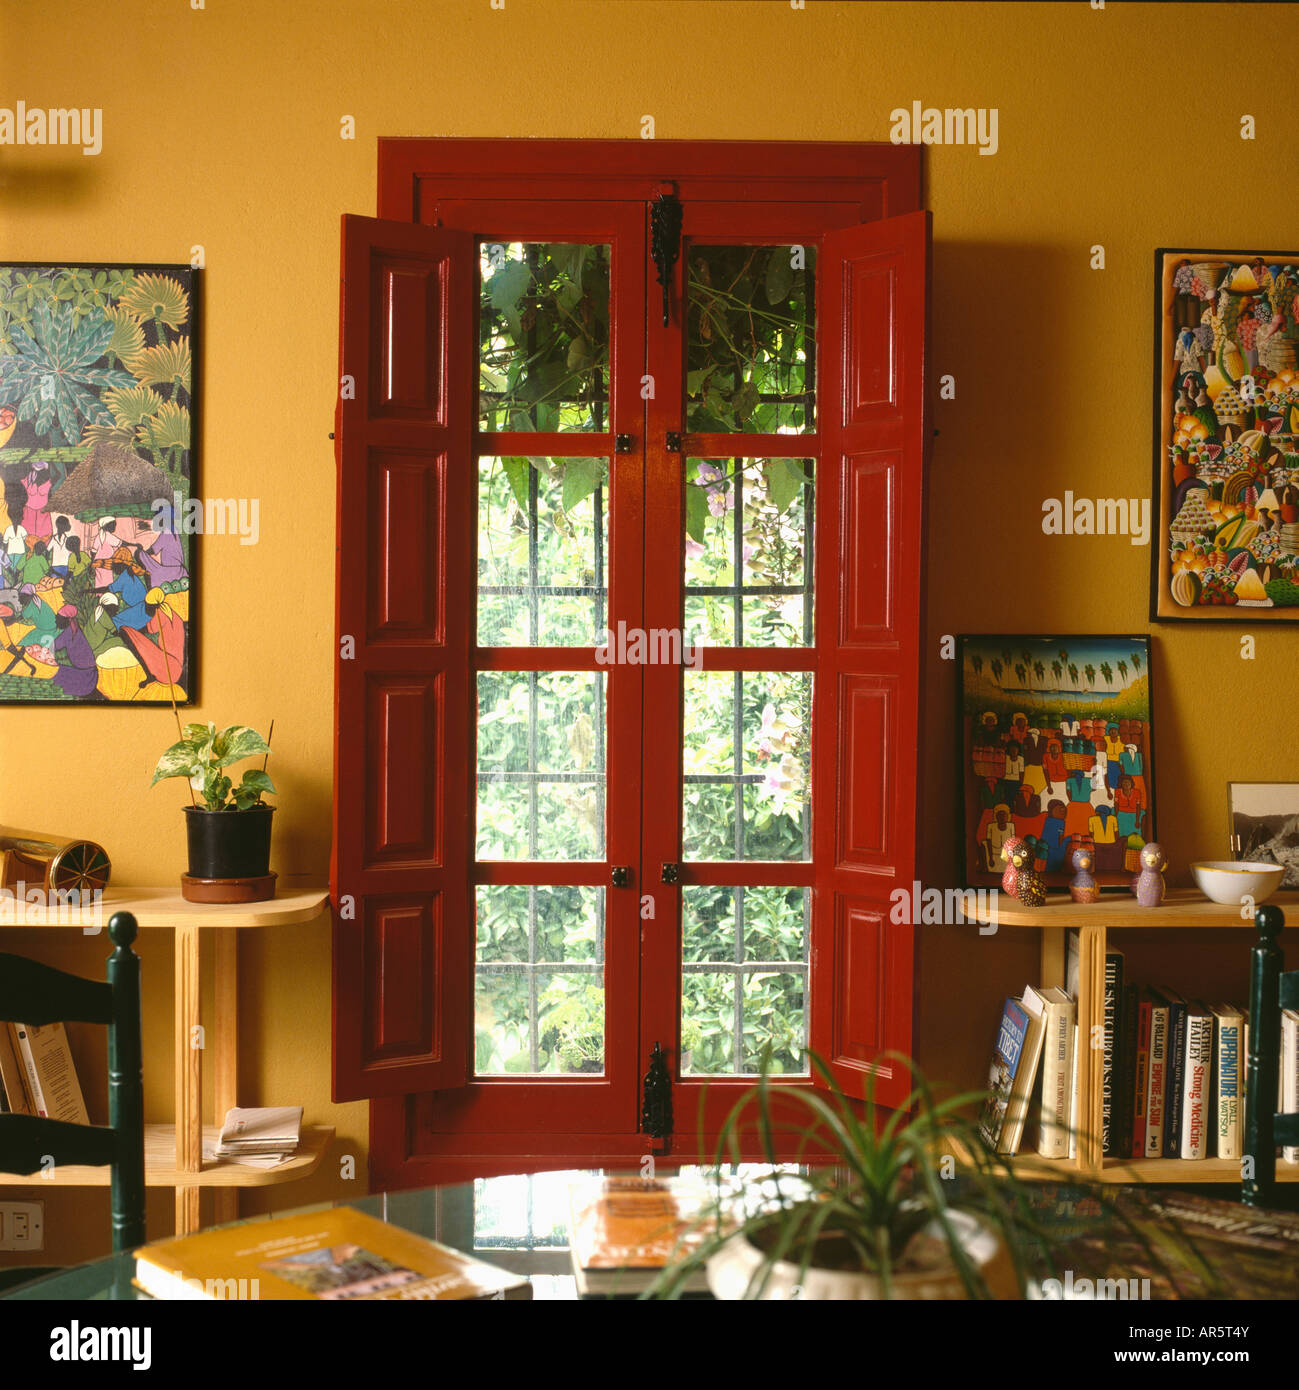 Red shutters and windowframe on French doors in yellow Seventies Spanish dining room & Red shutters and windowframe on French doors in yellow Seventies ...